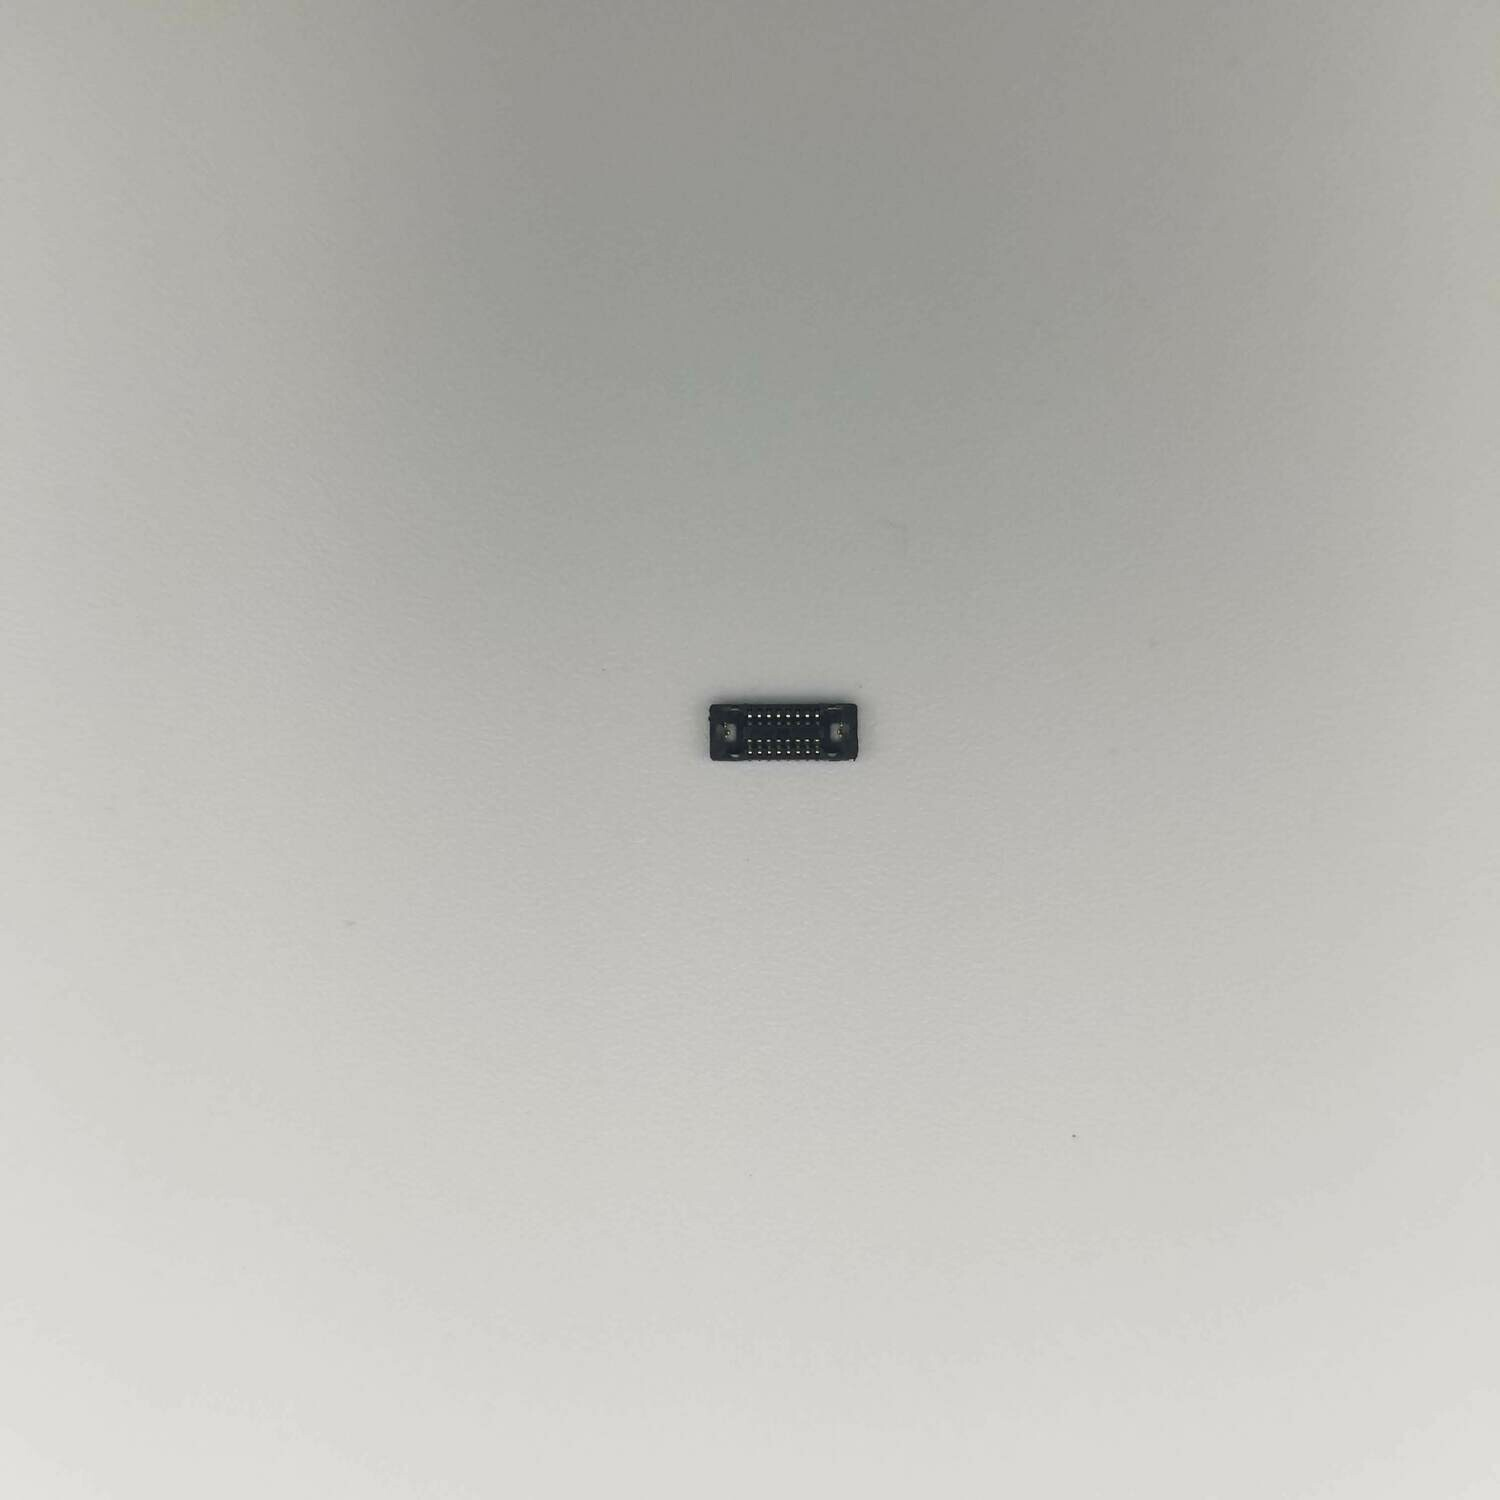 iPhone 6+ home button connector